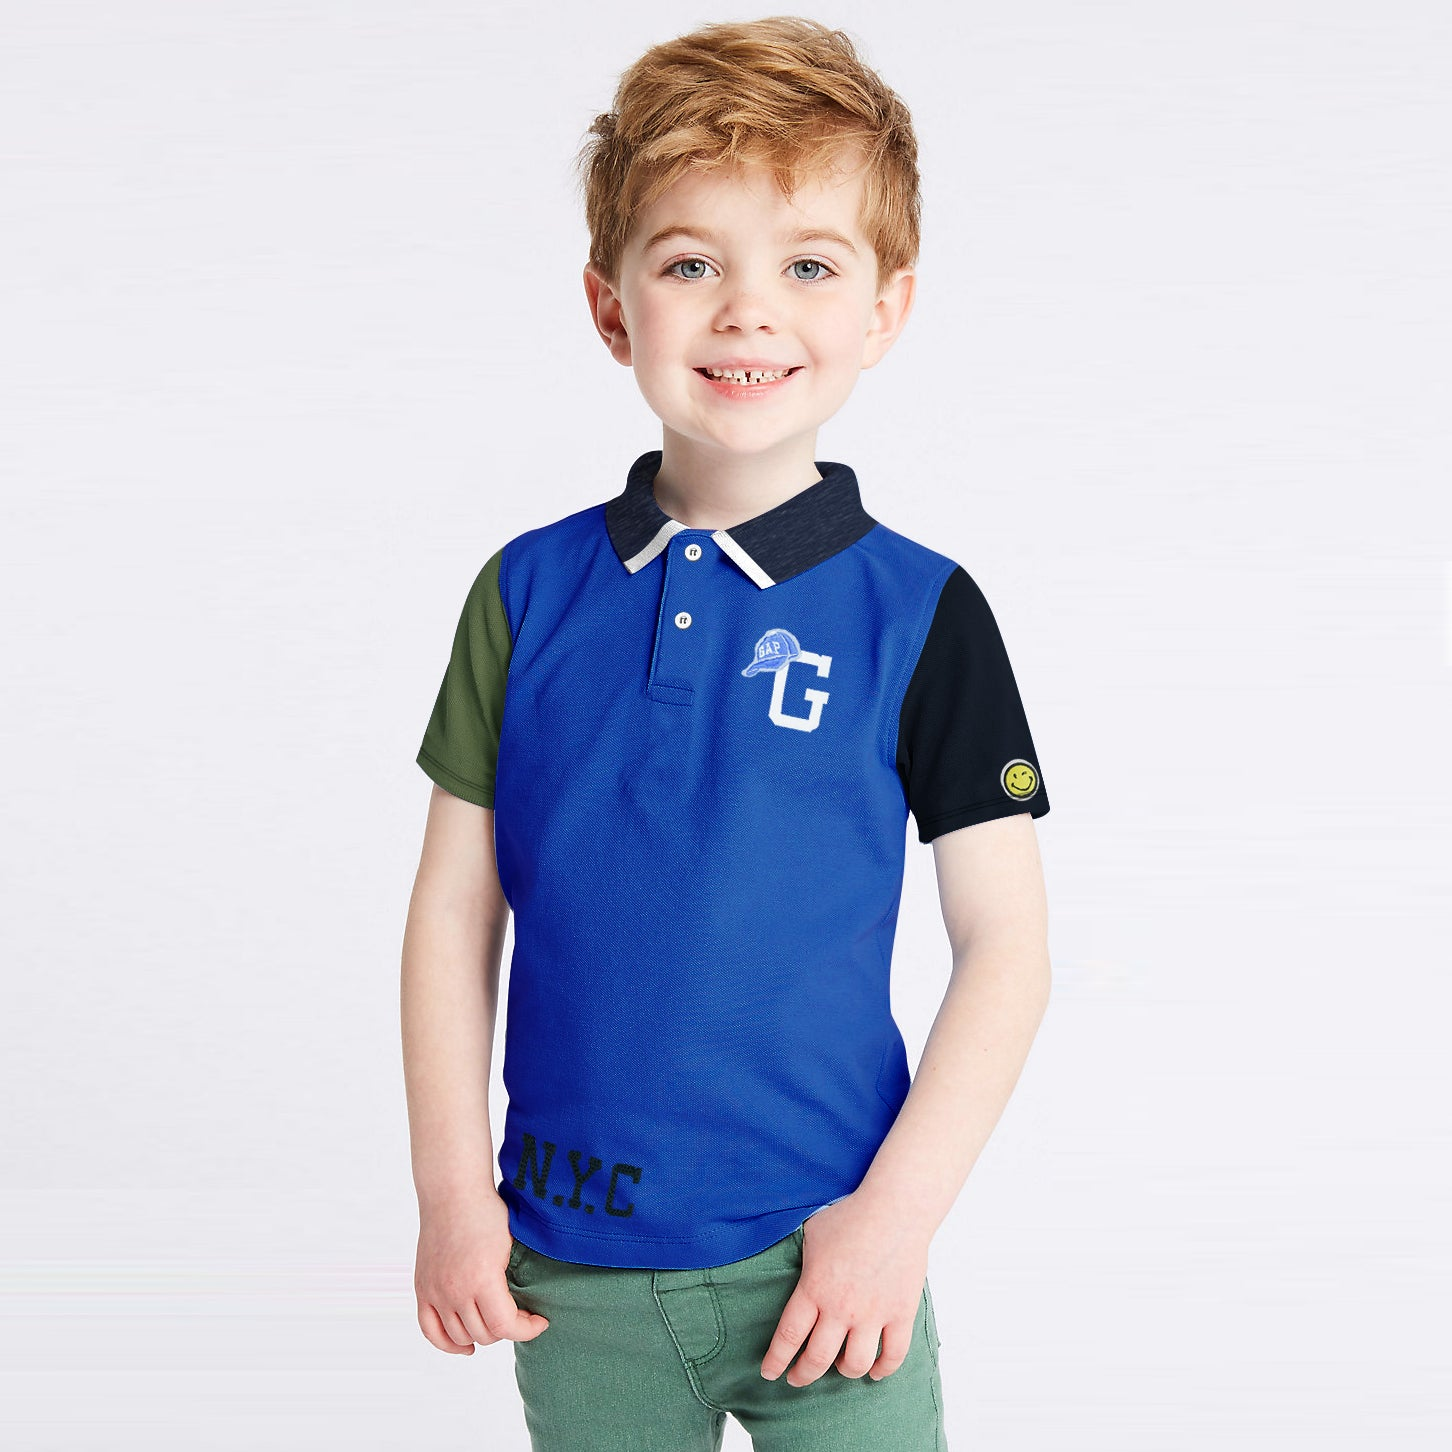 1454151ab GAP Half Sleeve P.Q Polo Shirt For Kids-Dark Blue with Panel-BE8525 -  BrandsEgo